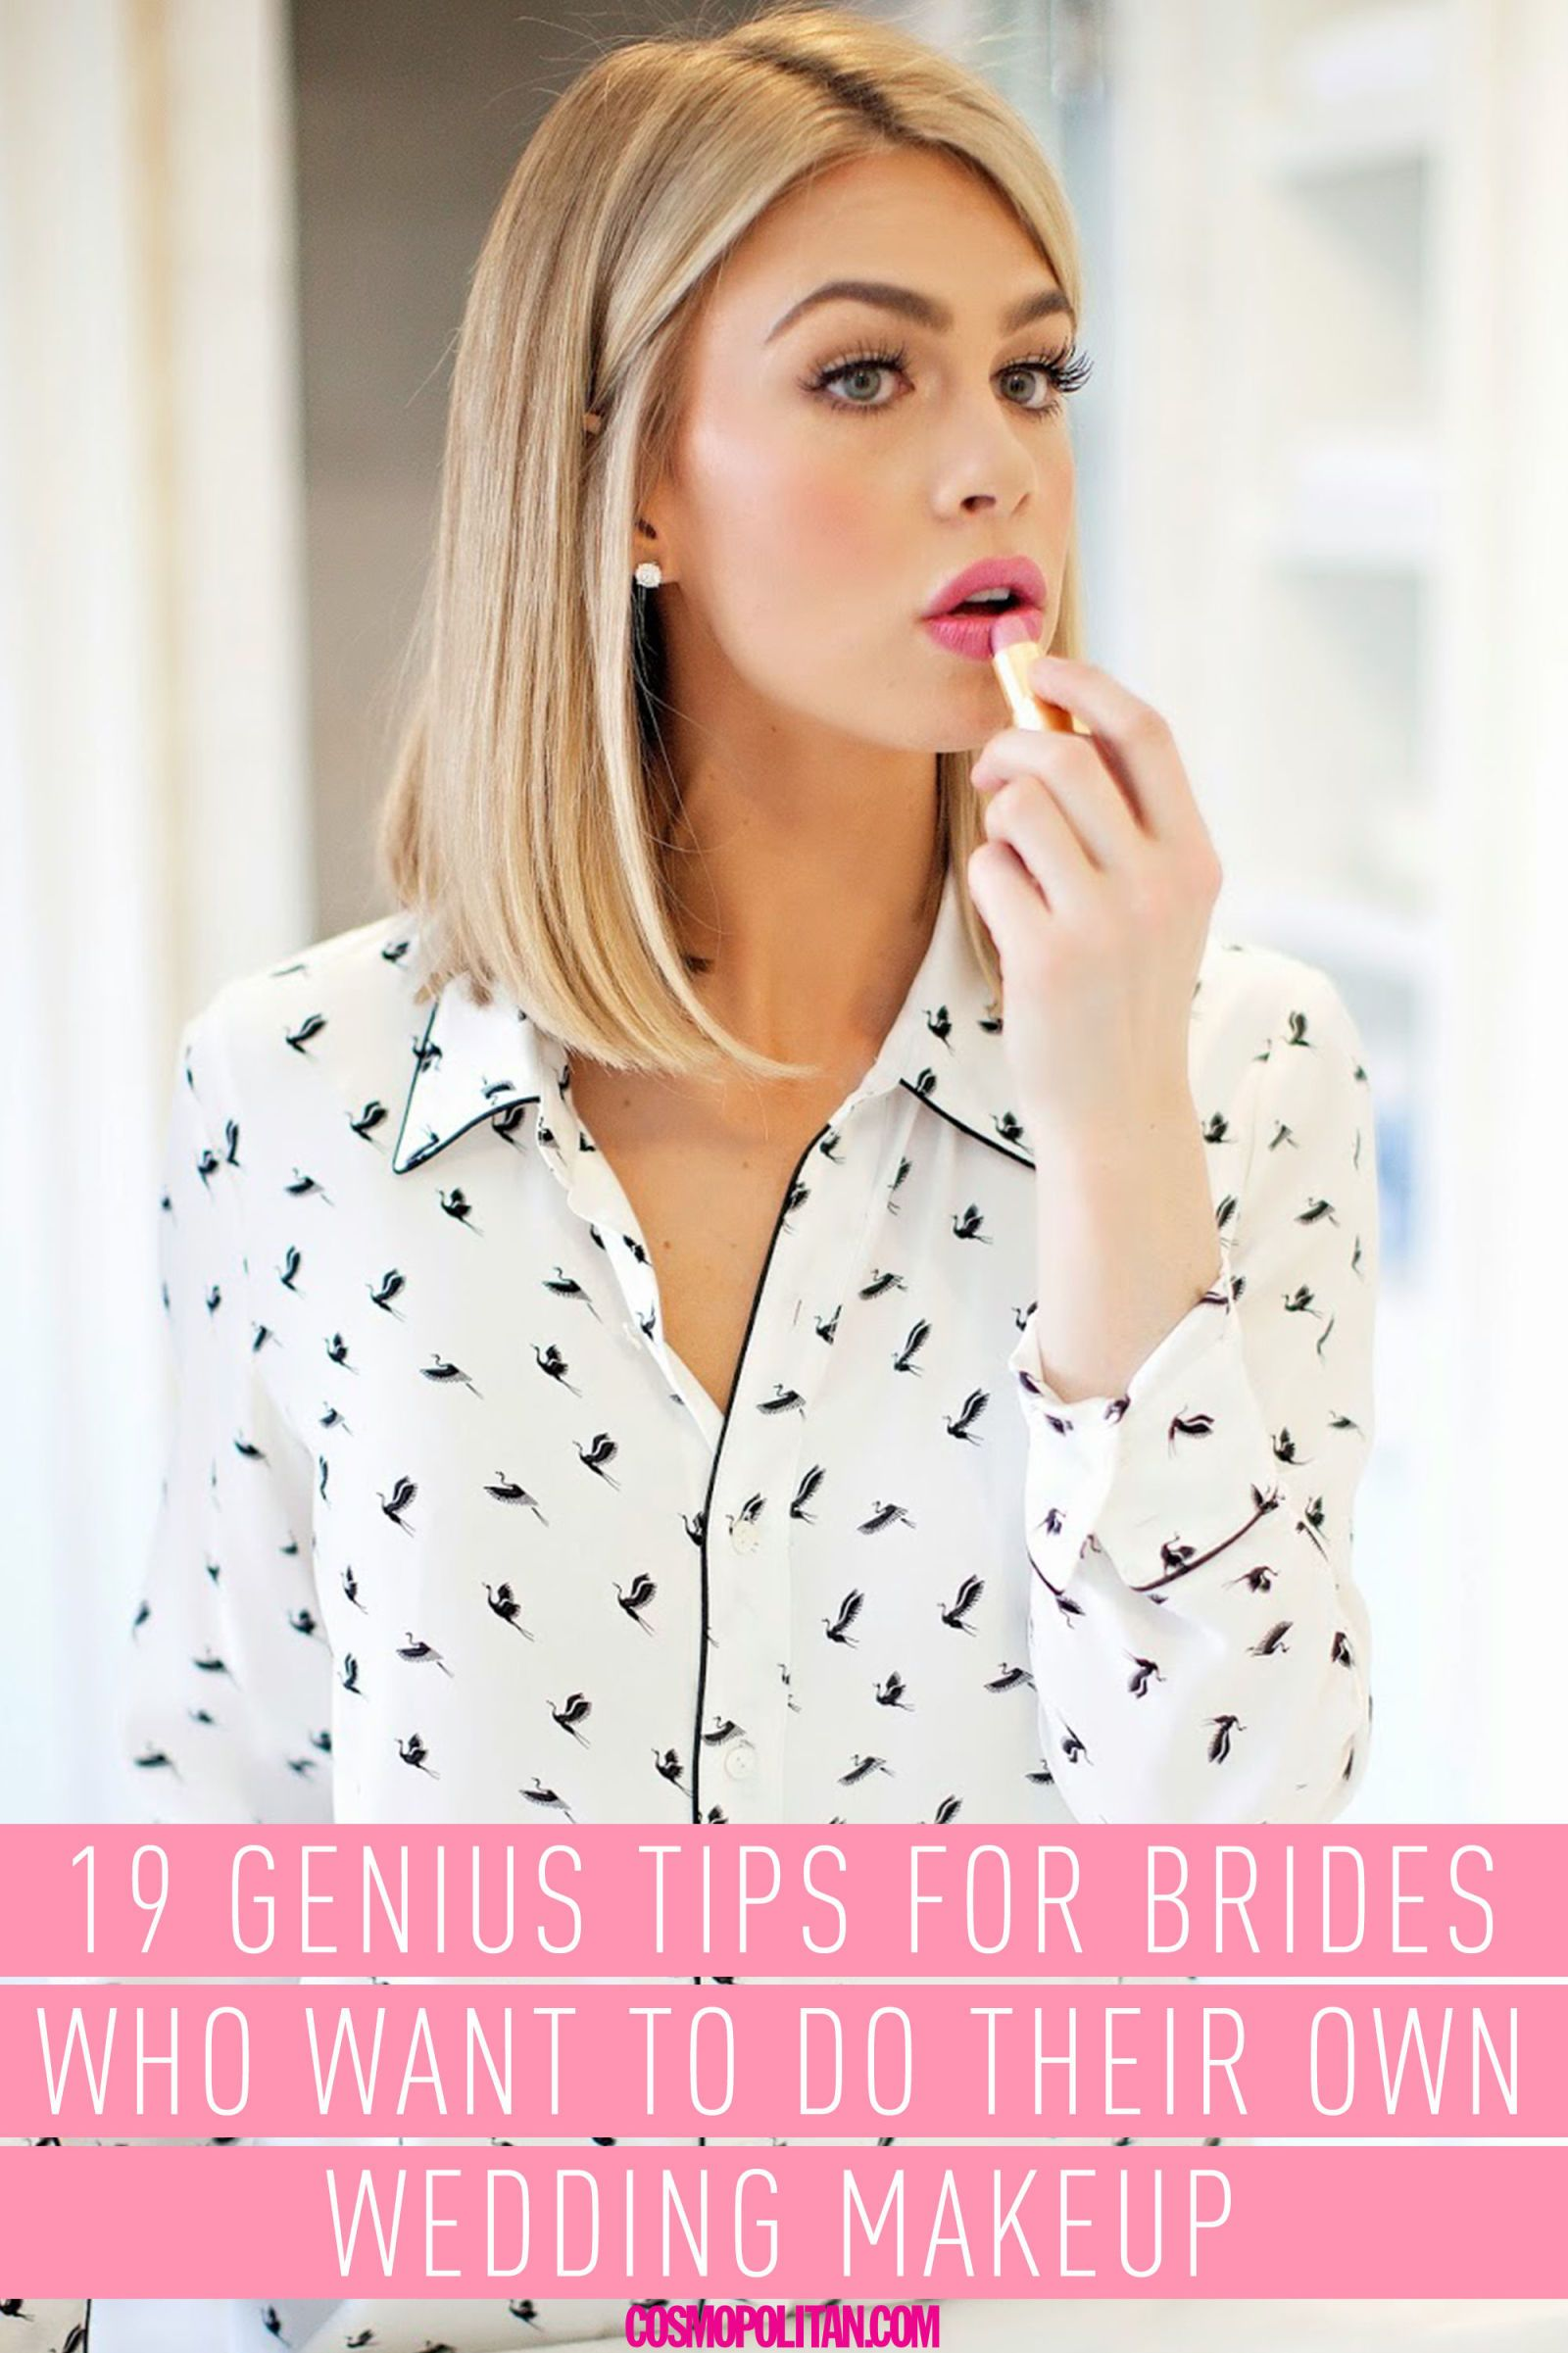 Genius Tips For Brides Who Want To Do Their Own Wedding Makeup